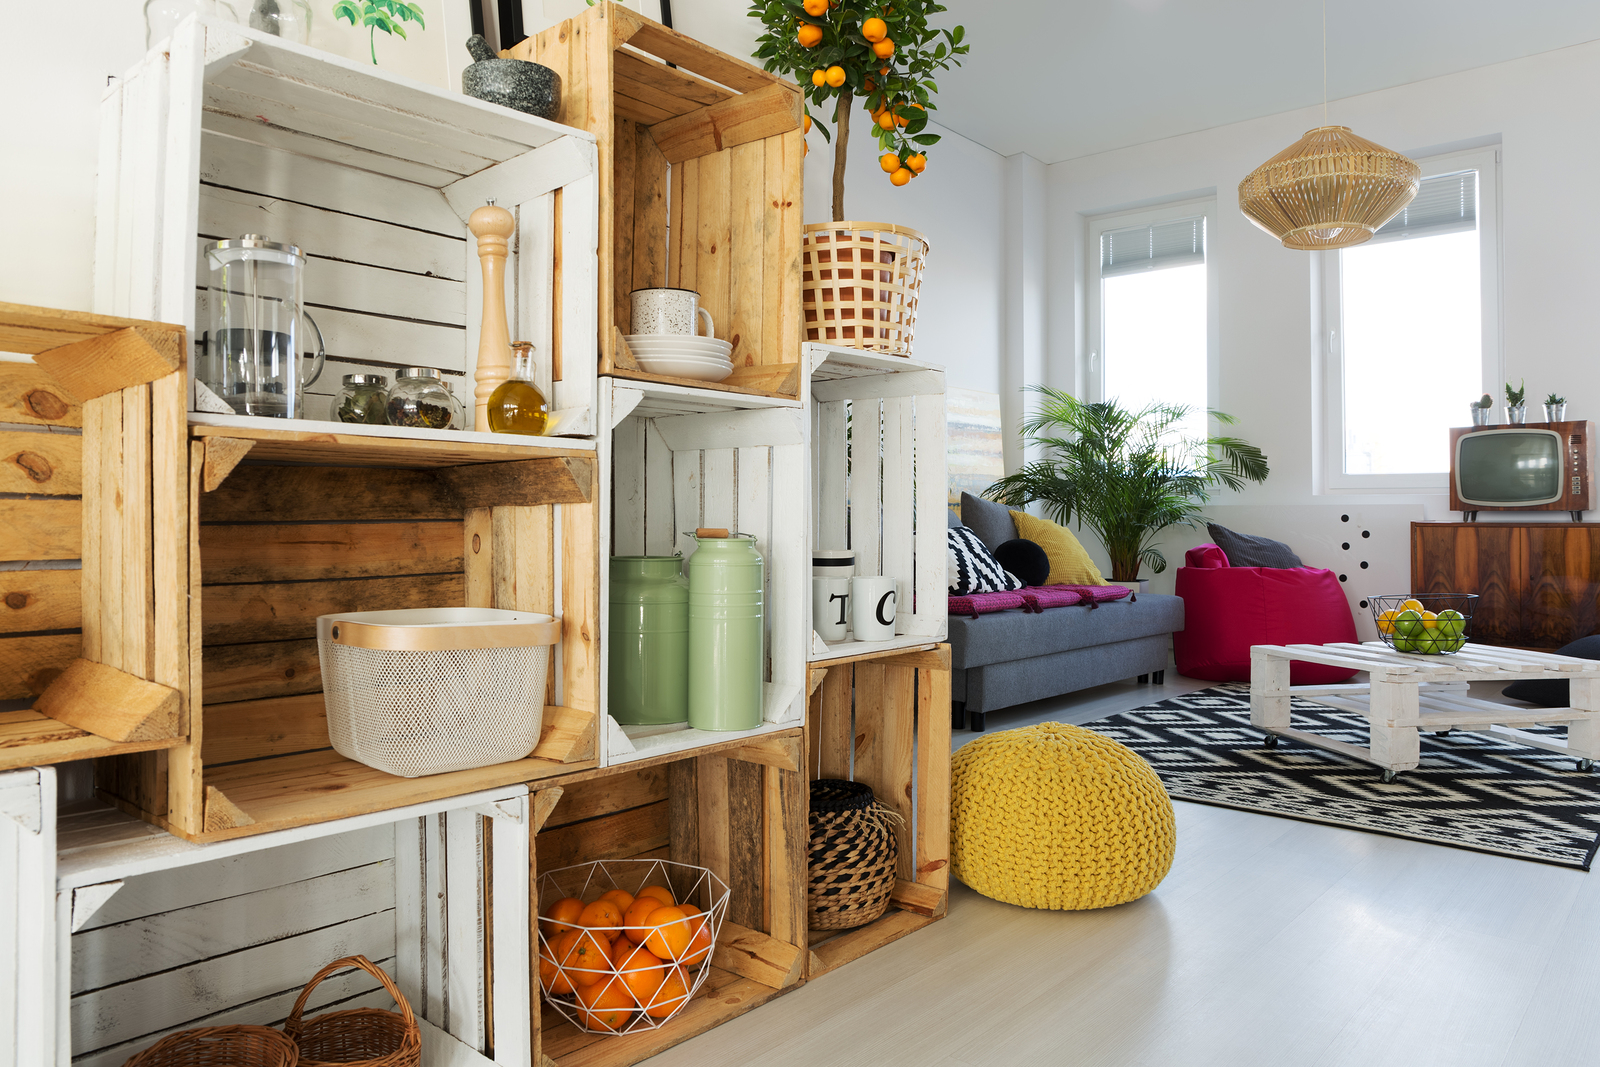 An assortment of wooden crates are stacked to create a DIY shelving unit.